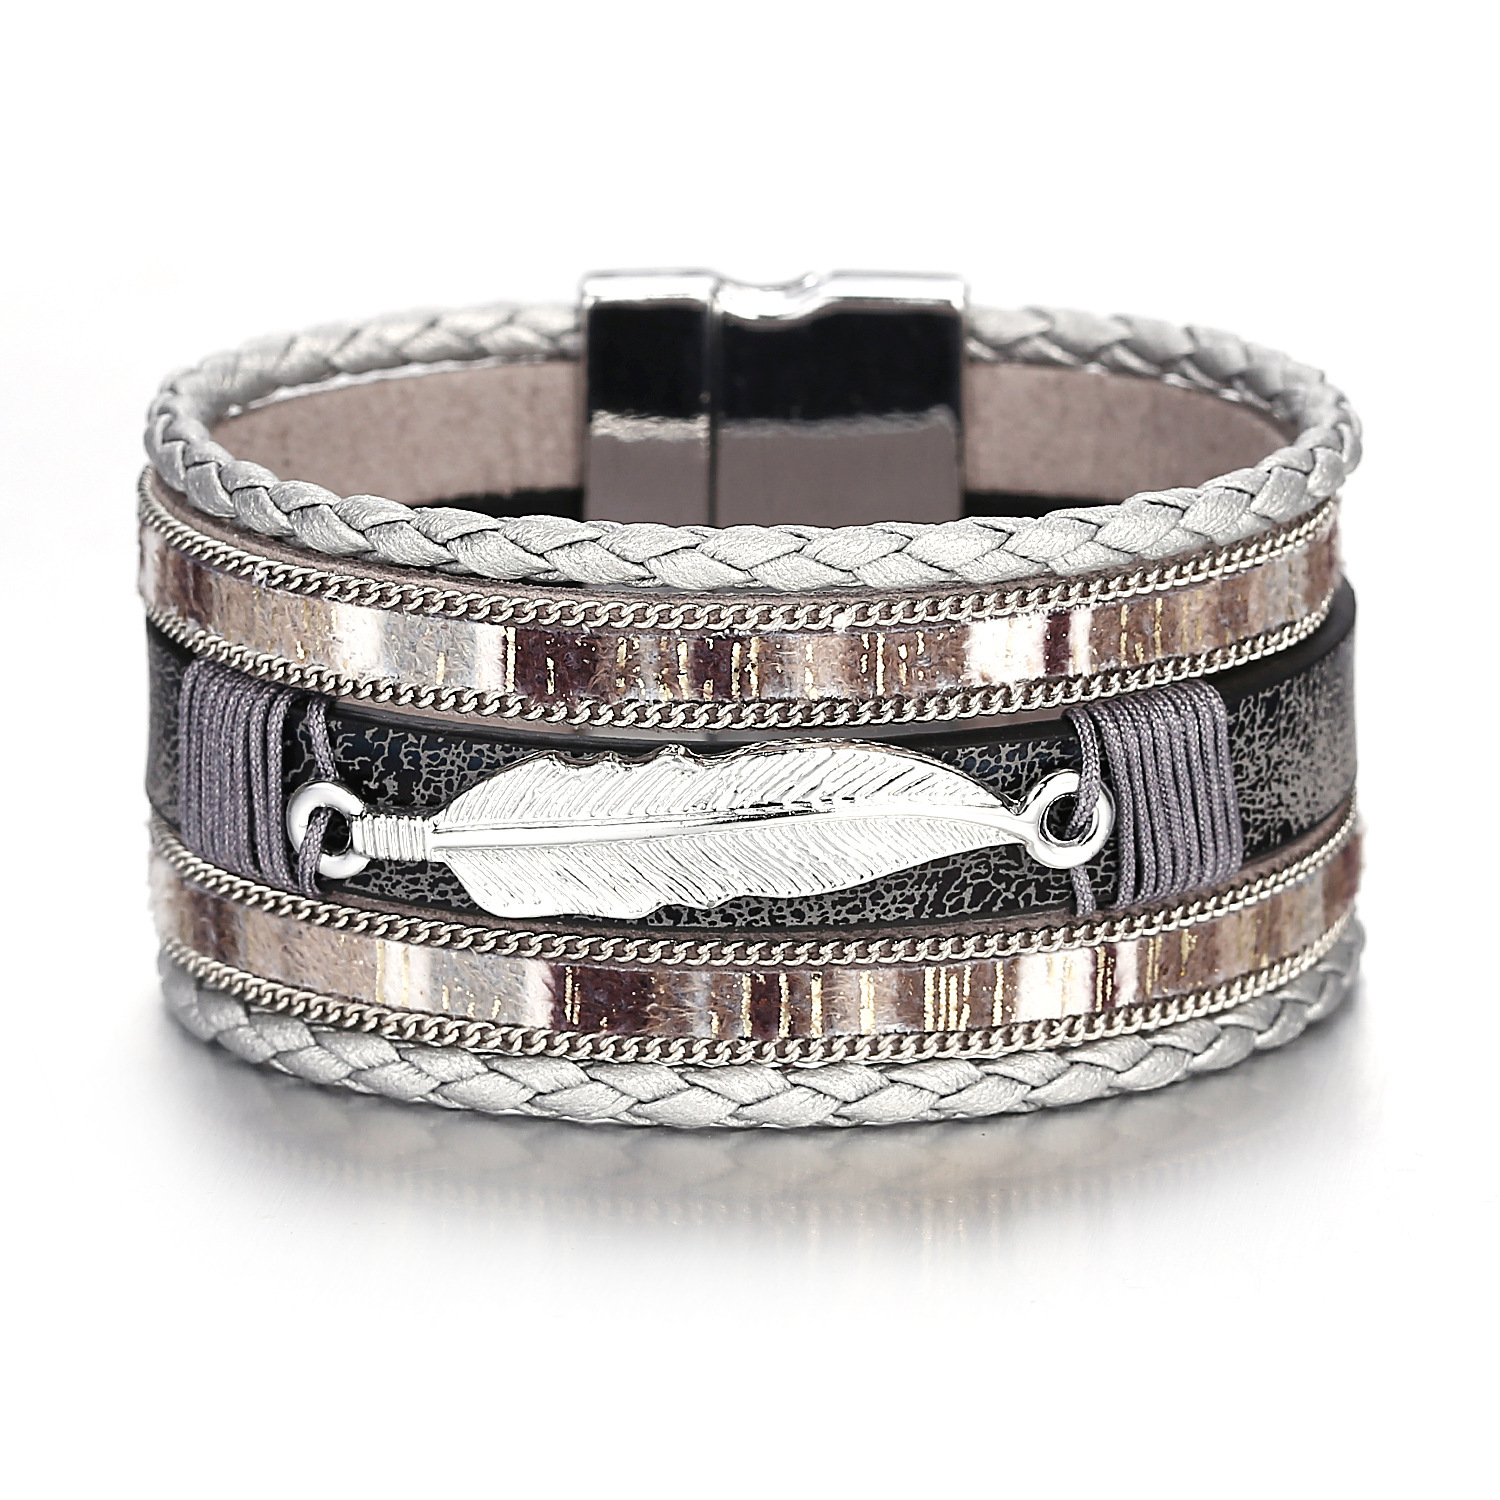 Personalized Shell PU Leather Simple Bracelet Fashion Charm Magnetic Alloy Buckle Layered Bracelets